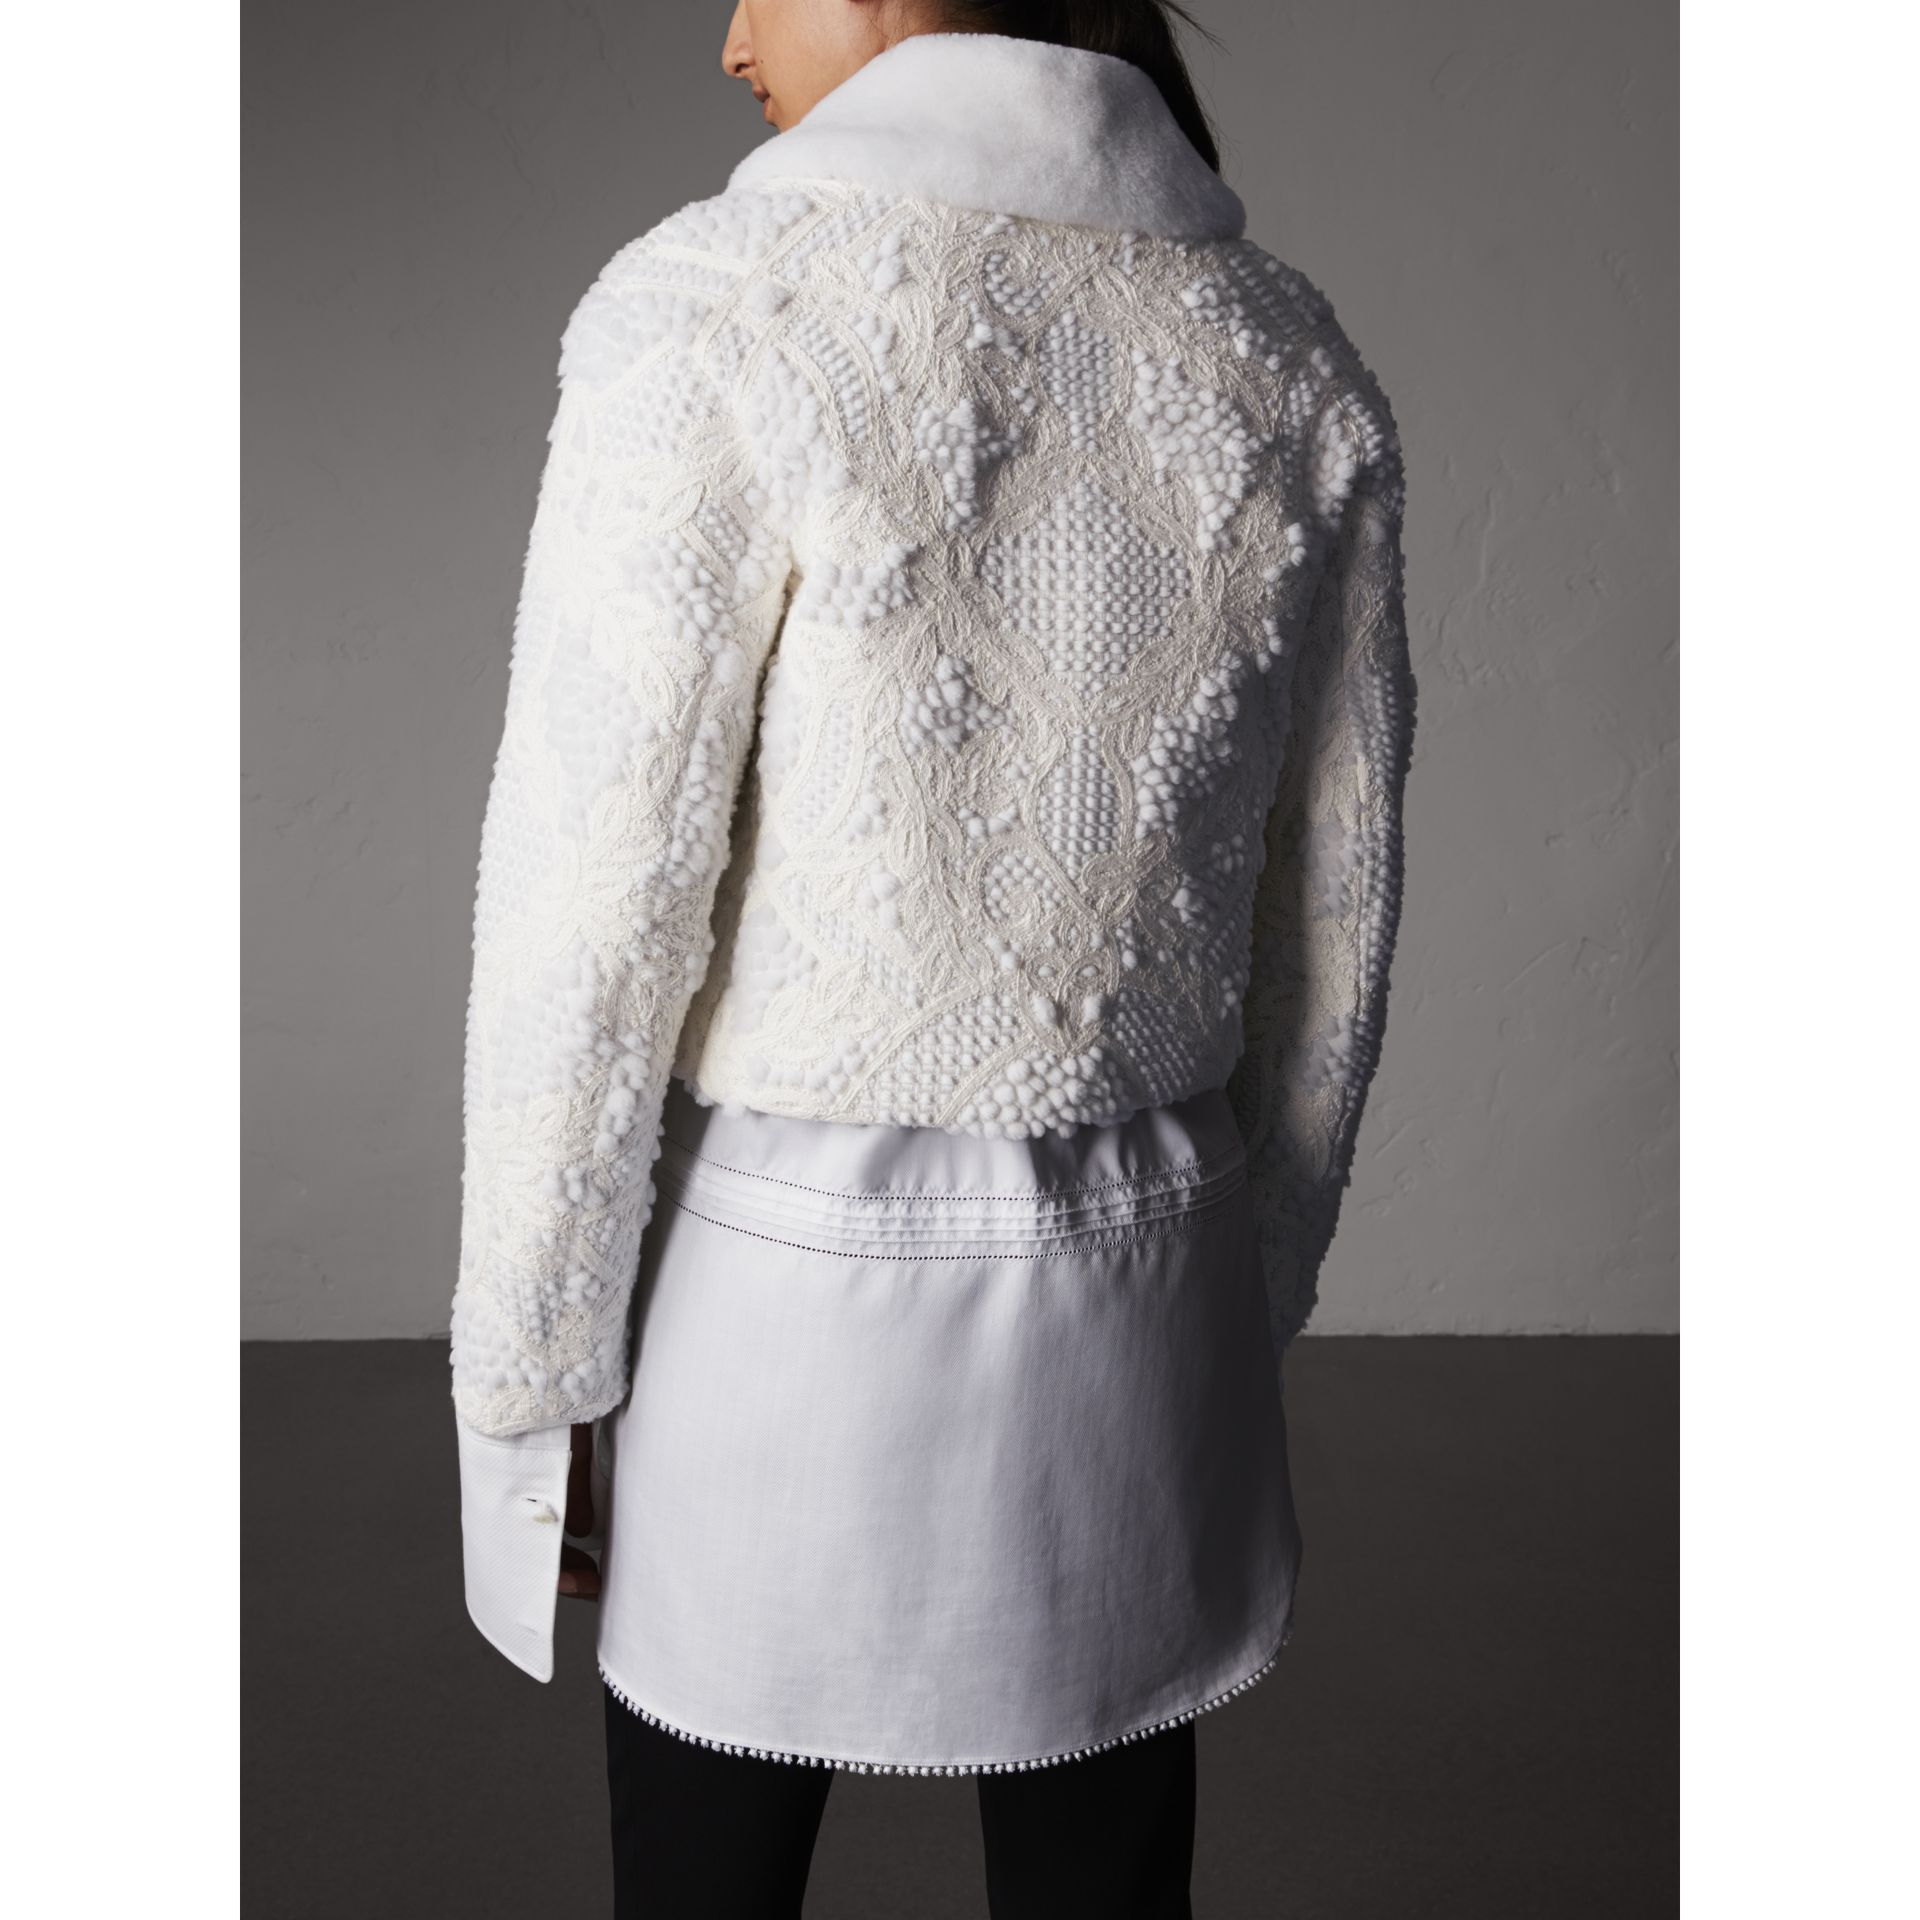 Macramé Lace-embellished Shearling Jacket in White - Women | Burberry - gallery image 2